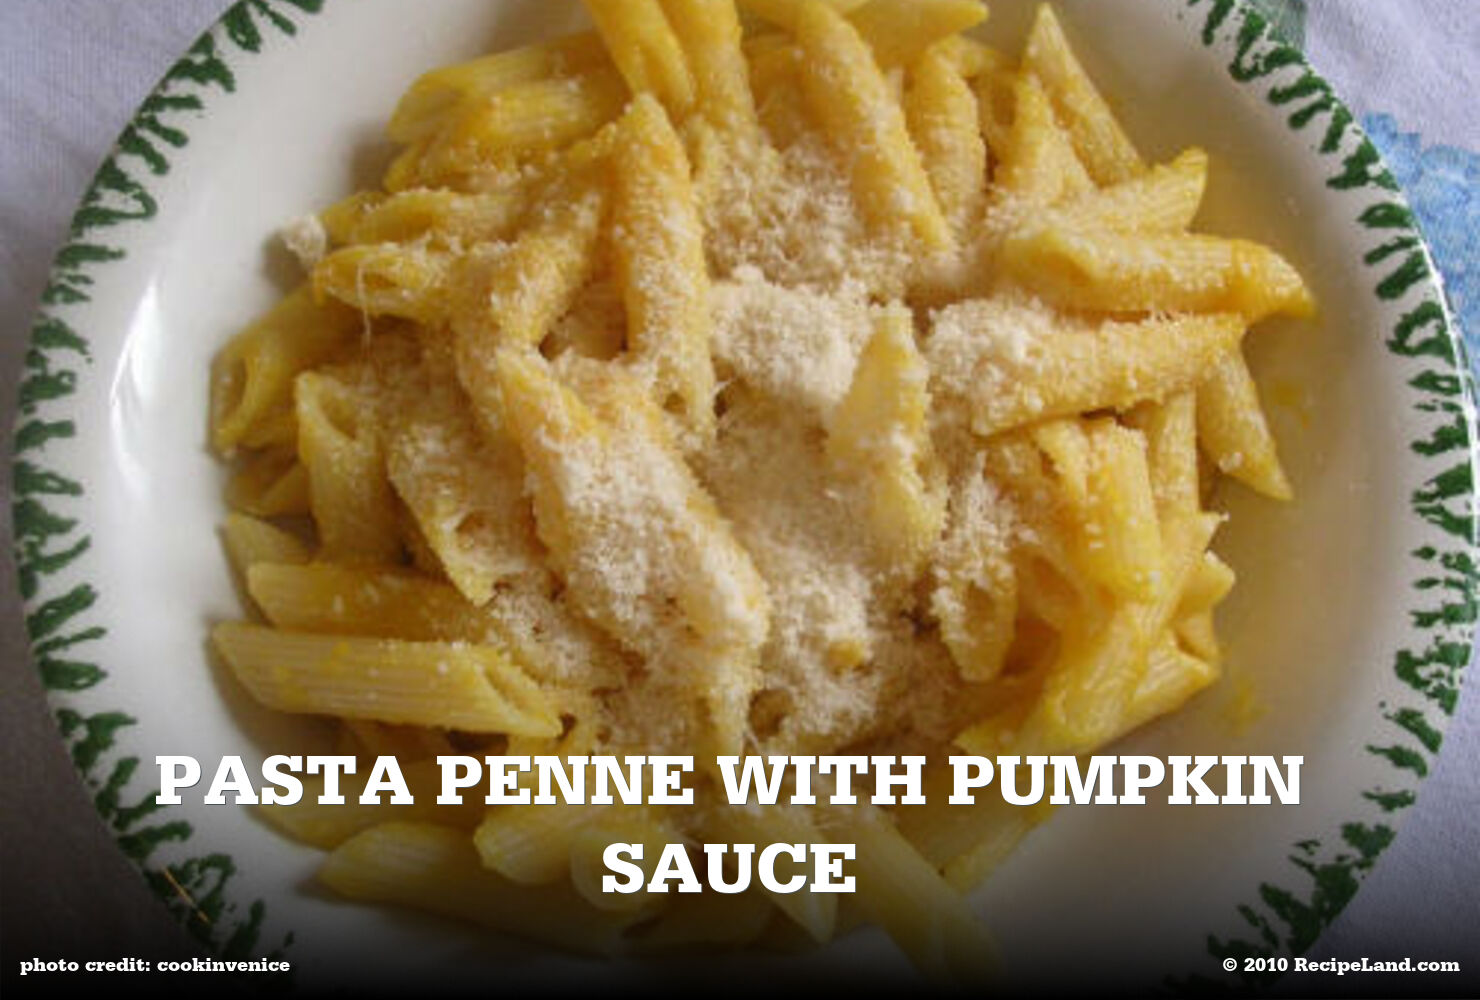 Pasta Penne with Pumpkin Sauce